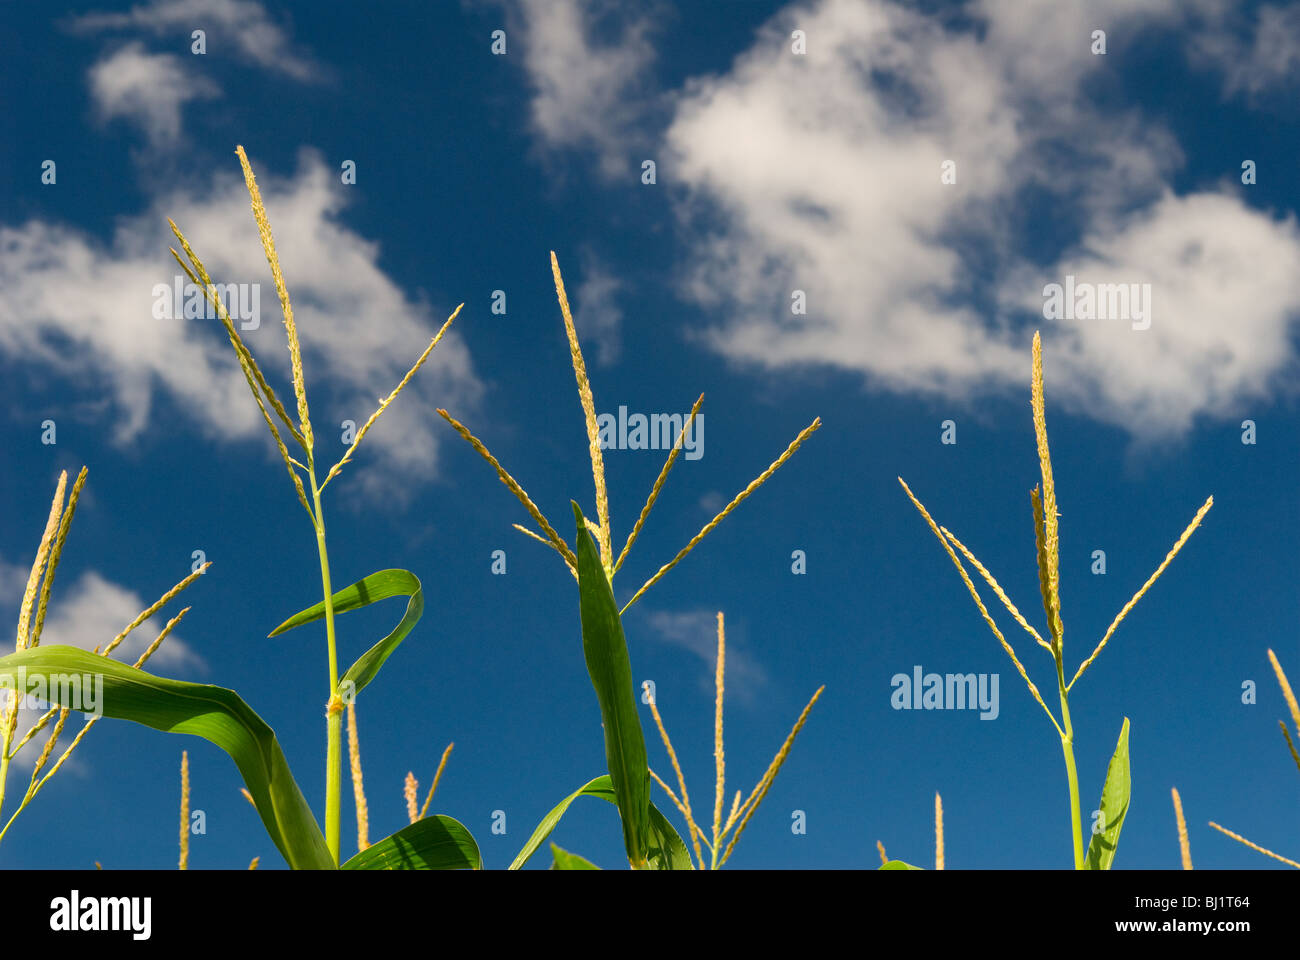 Cornfield in Indiana. Corn tassels for pollination. - Stock Image